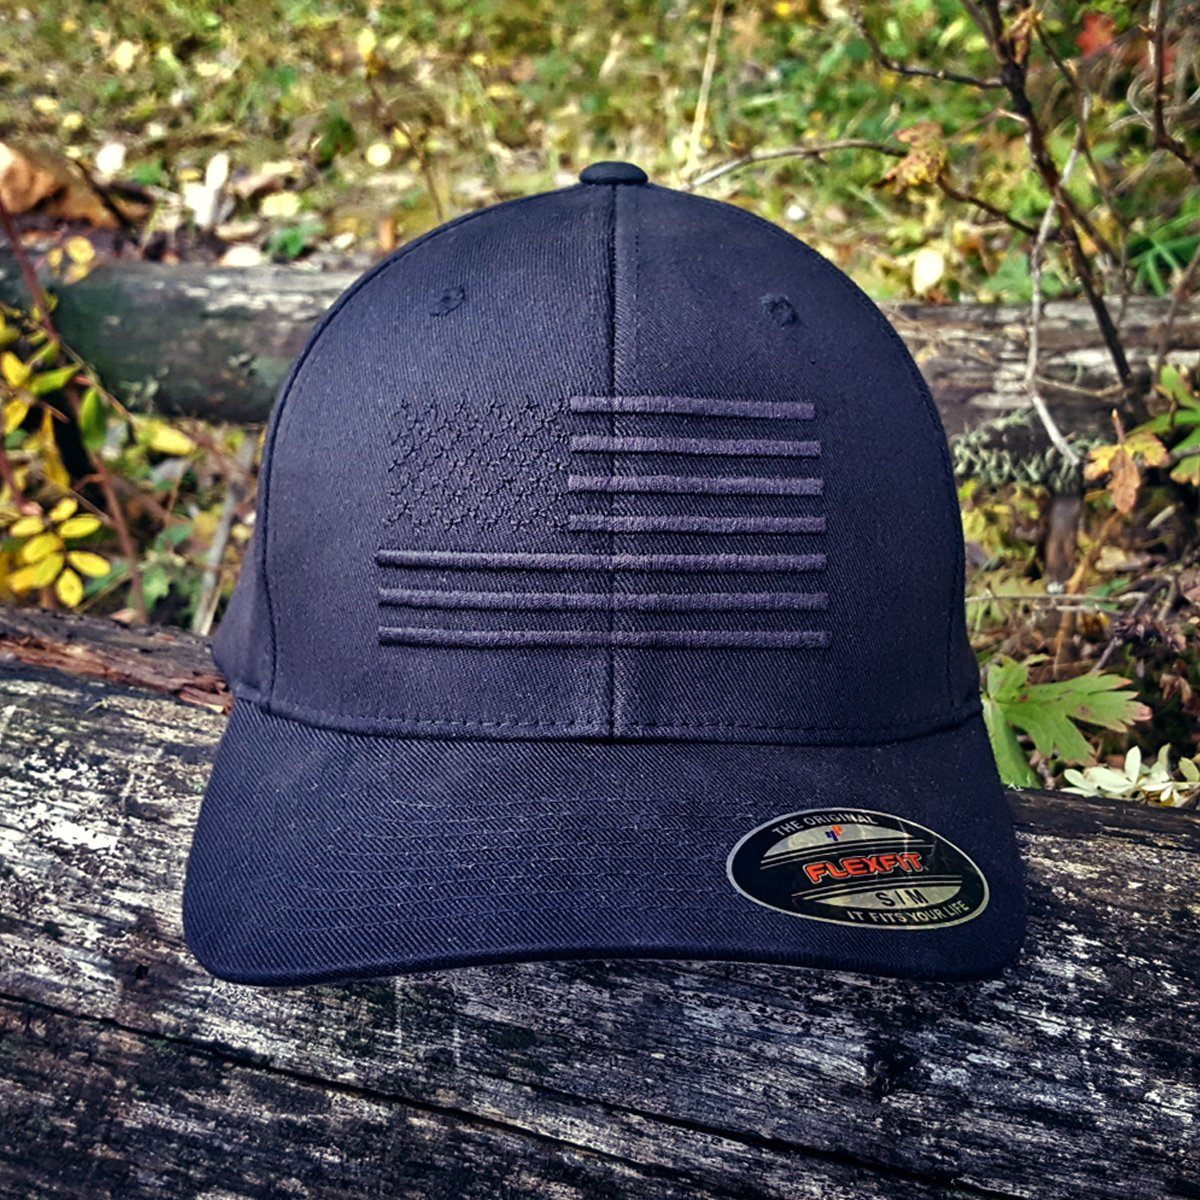 b2525e2cecb The Ultimate American Flag Hat - The Blackout FlexFit - Eagle Six Gear